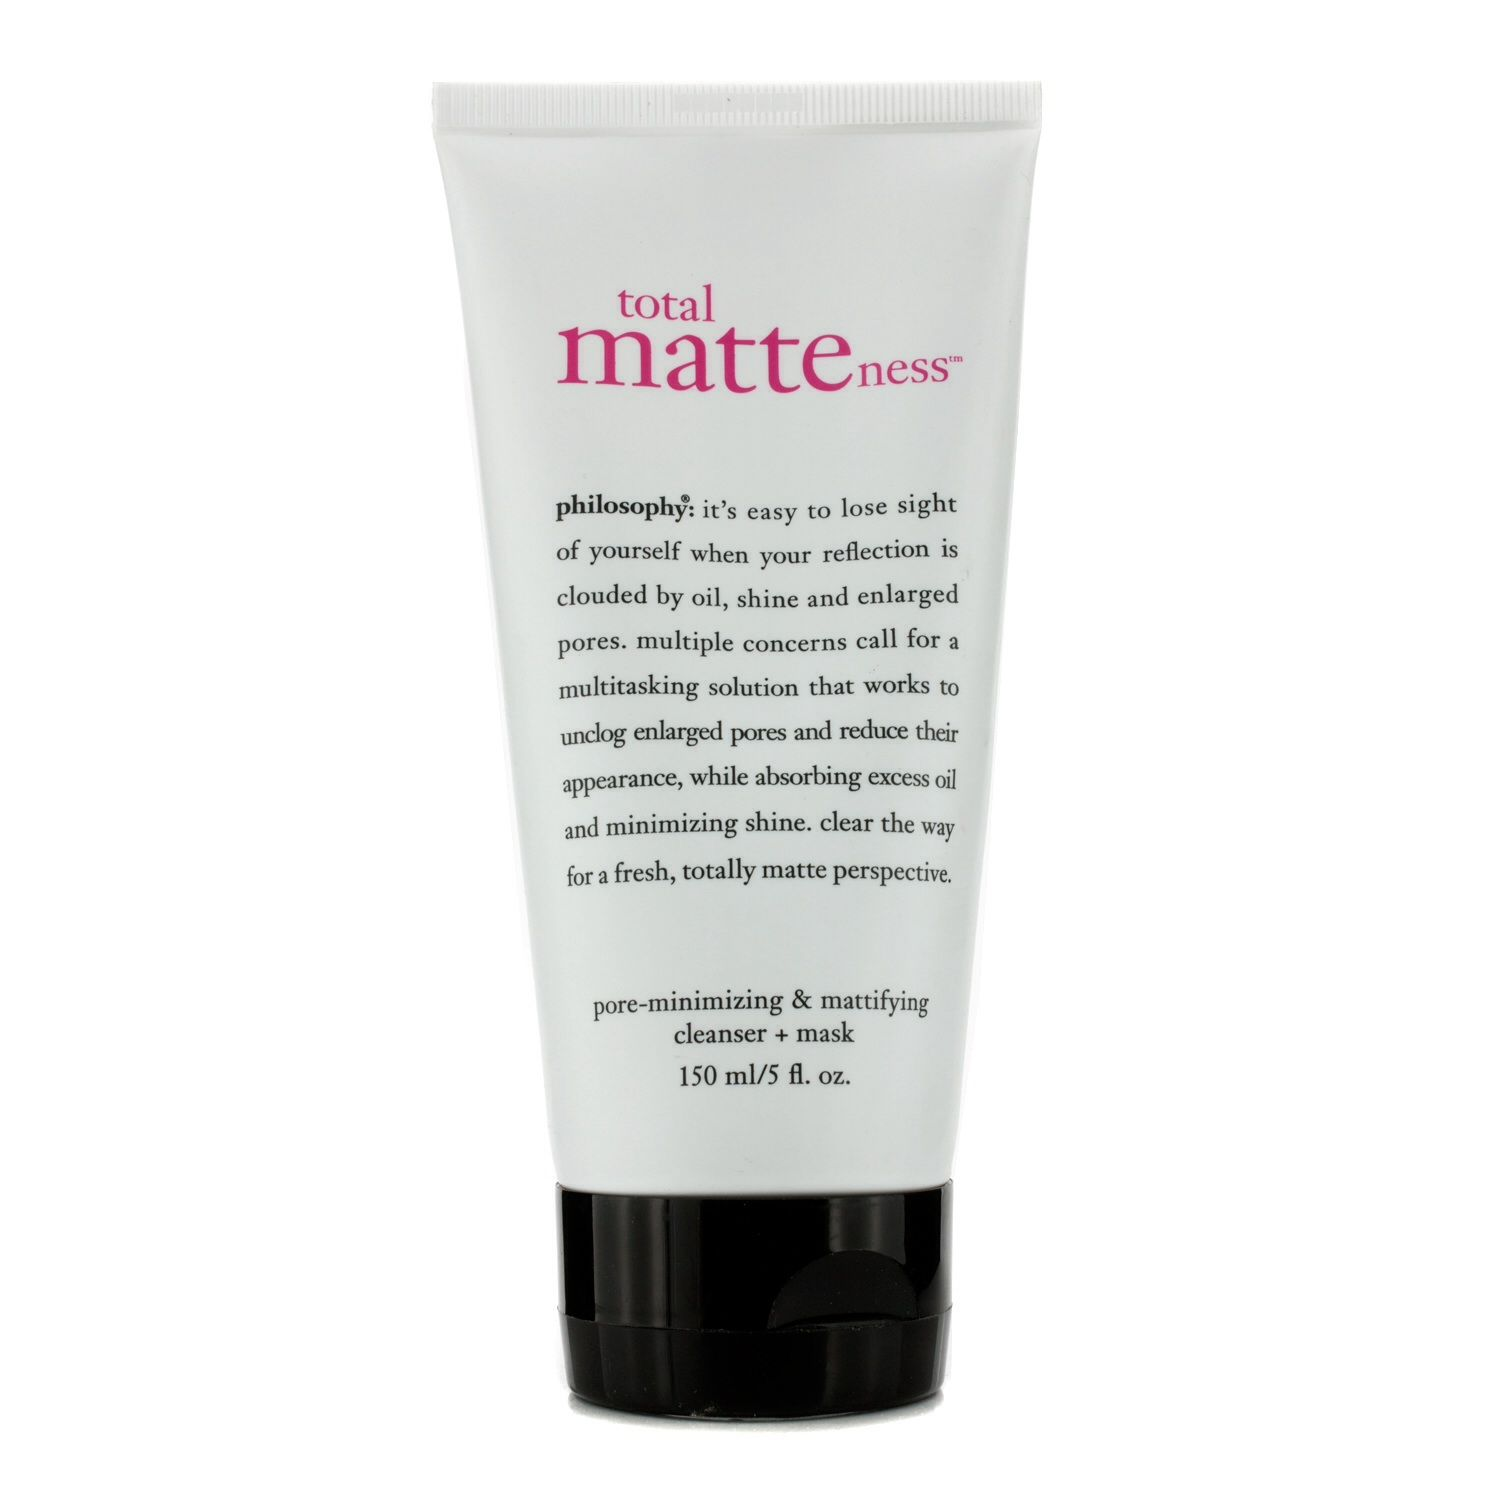 Philosophy Total Matteness Pore Minimizing Mattifying Cleanser